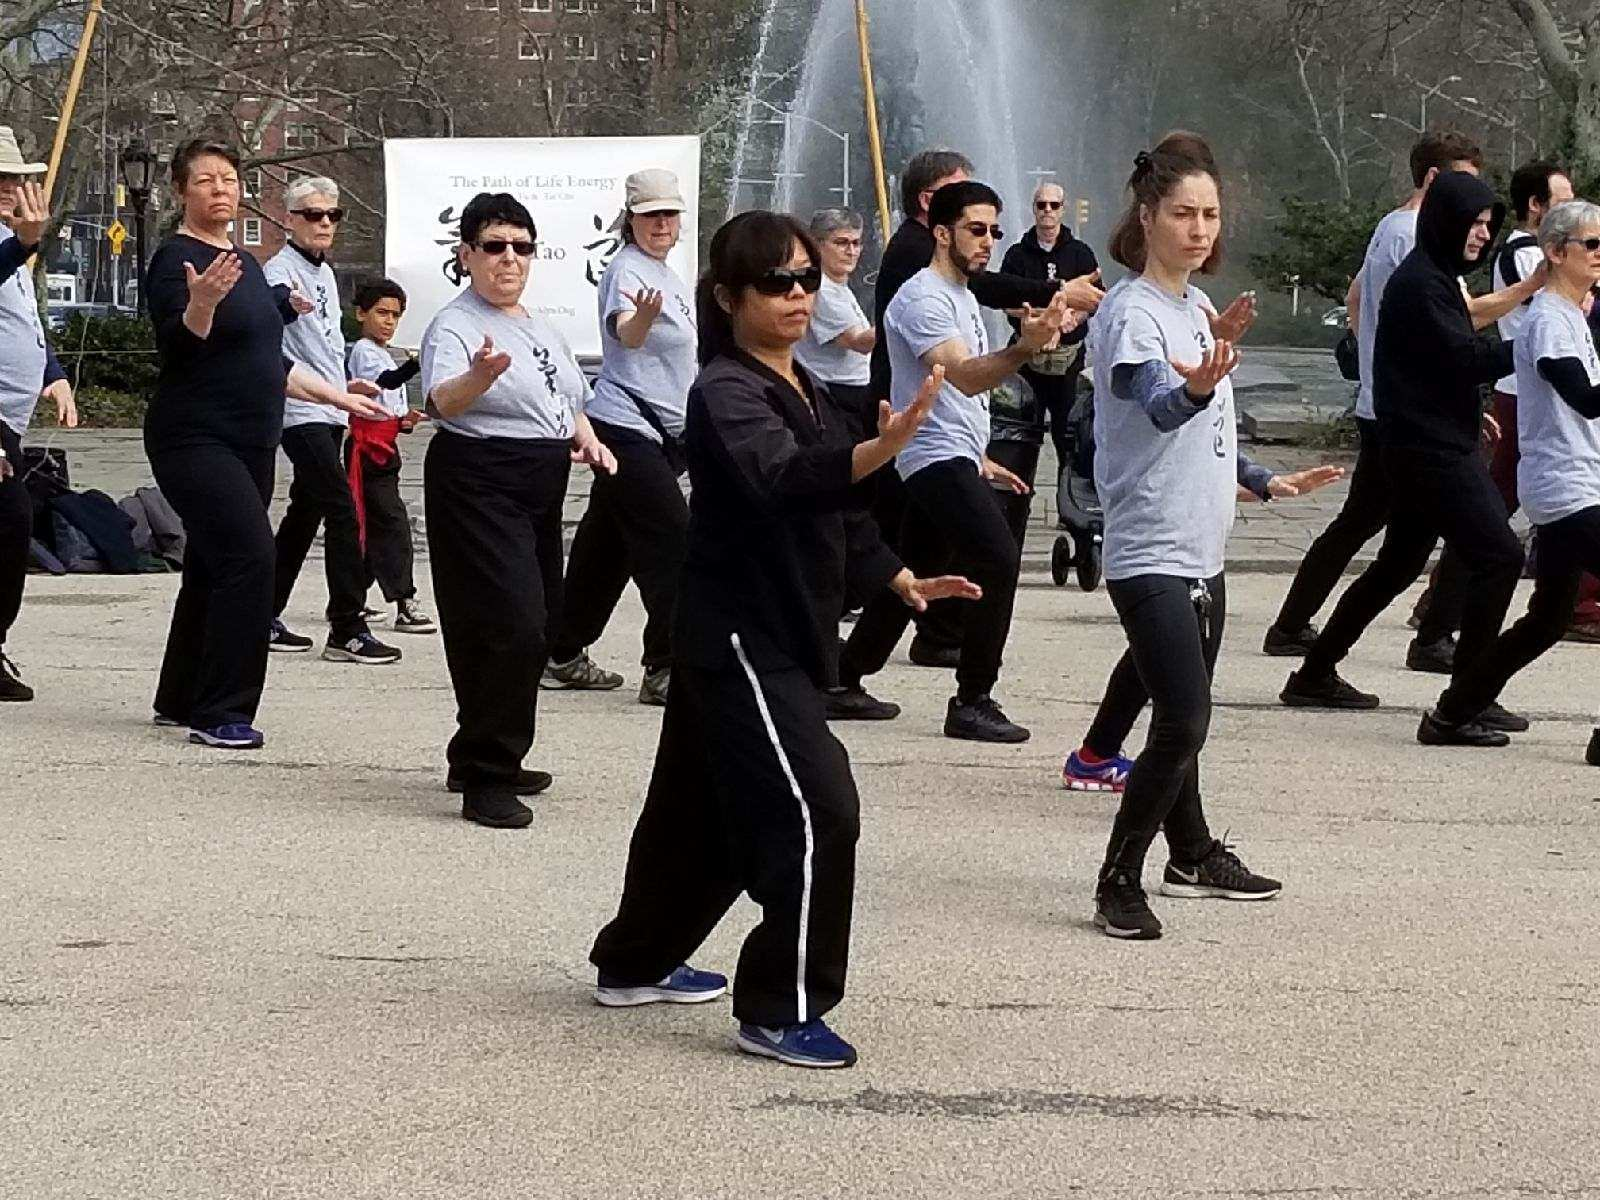 Sifu  Tzyann leading the World Tai Chi & Qigong Day at Grand Army Plaza 2018